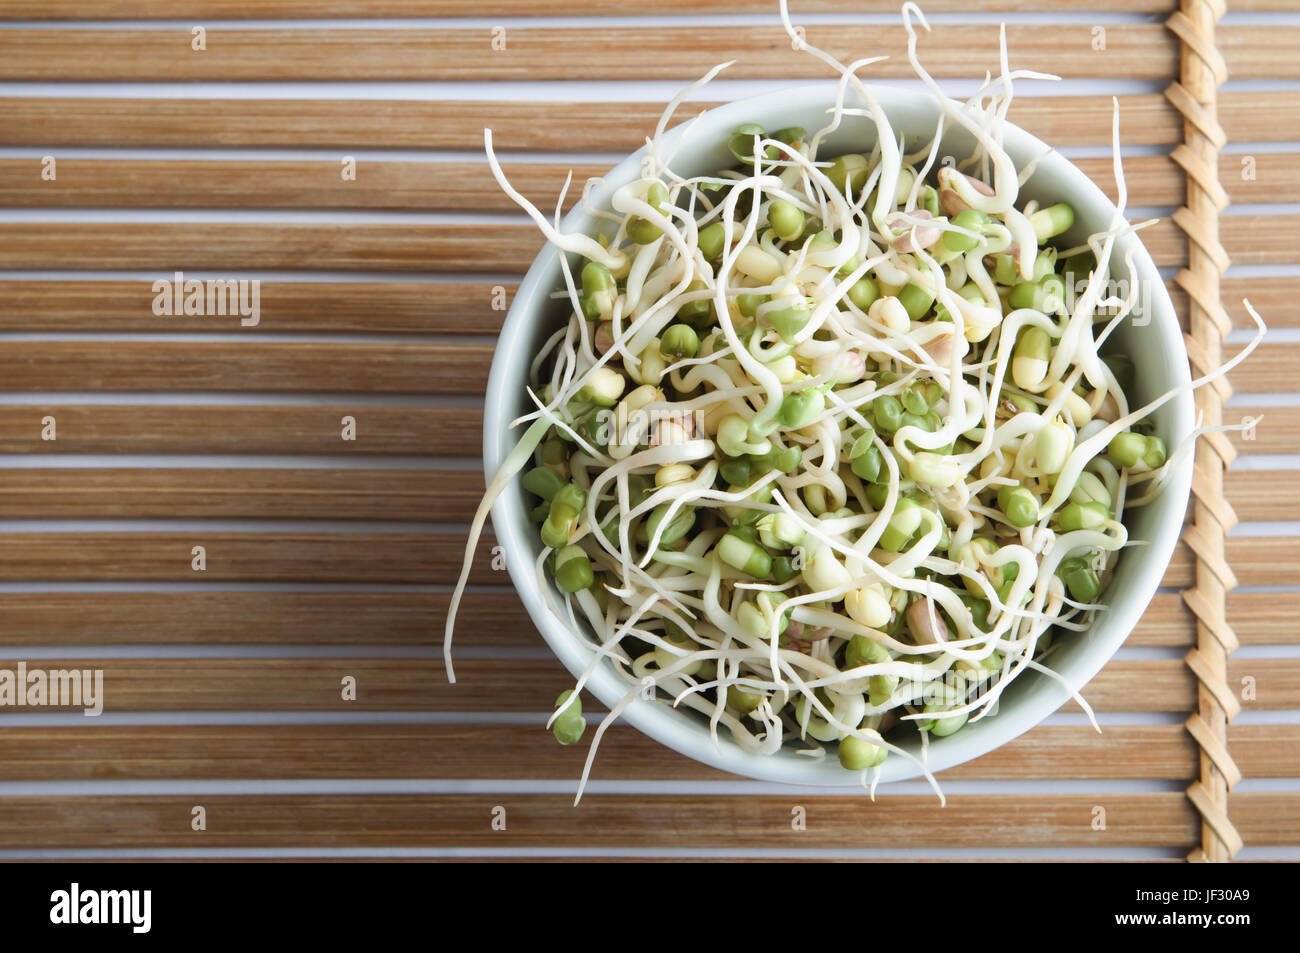 Overhead shot of a bowl of mung beansprouts, standing on a slatted bamboo mat. - Stock Image